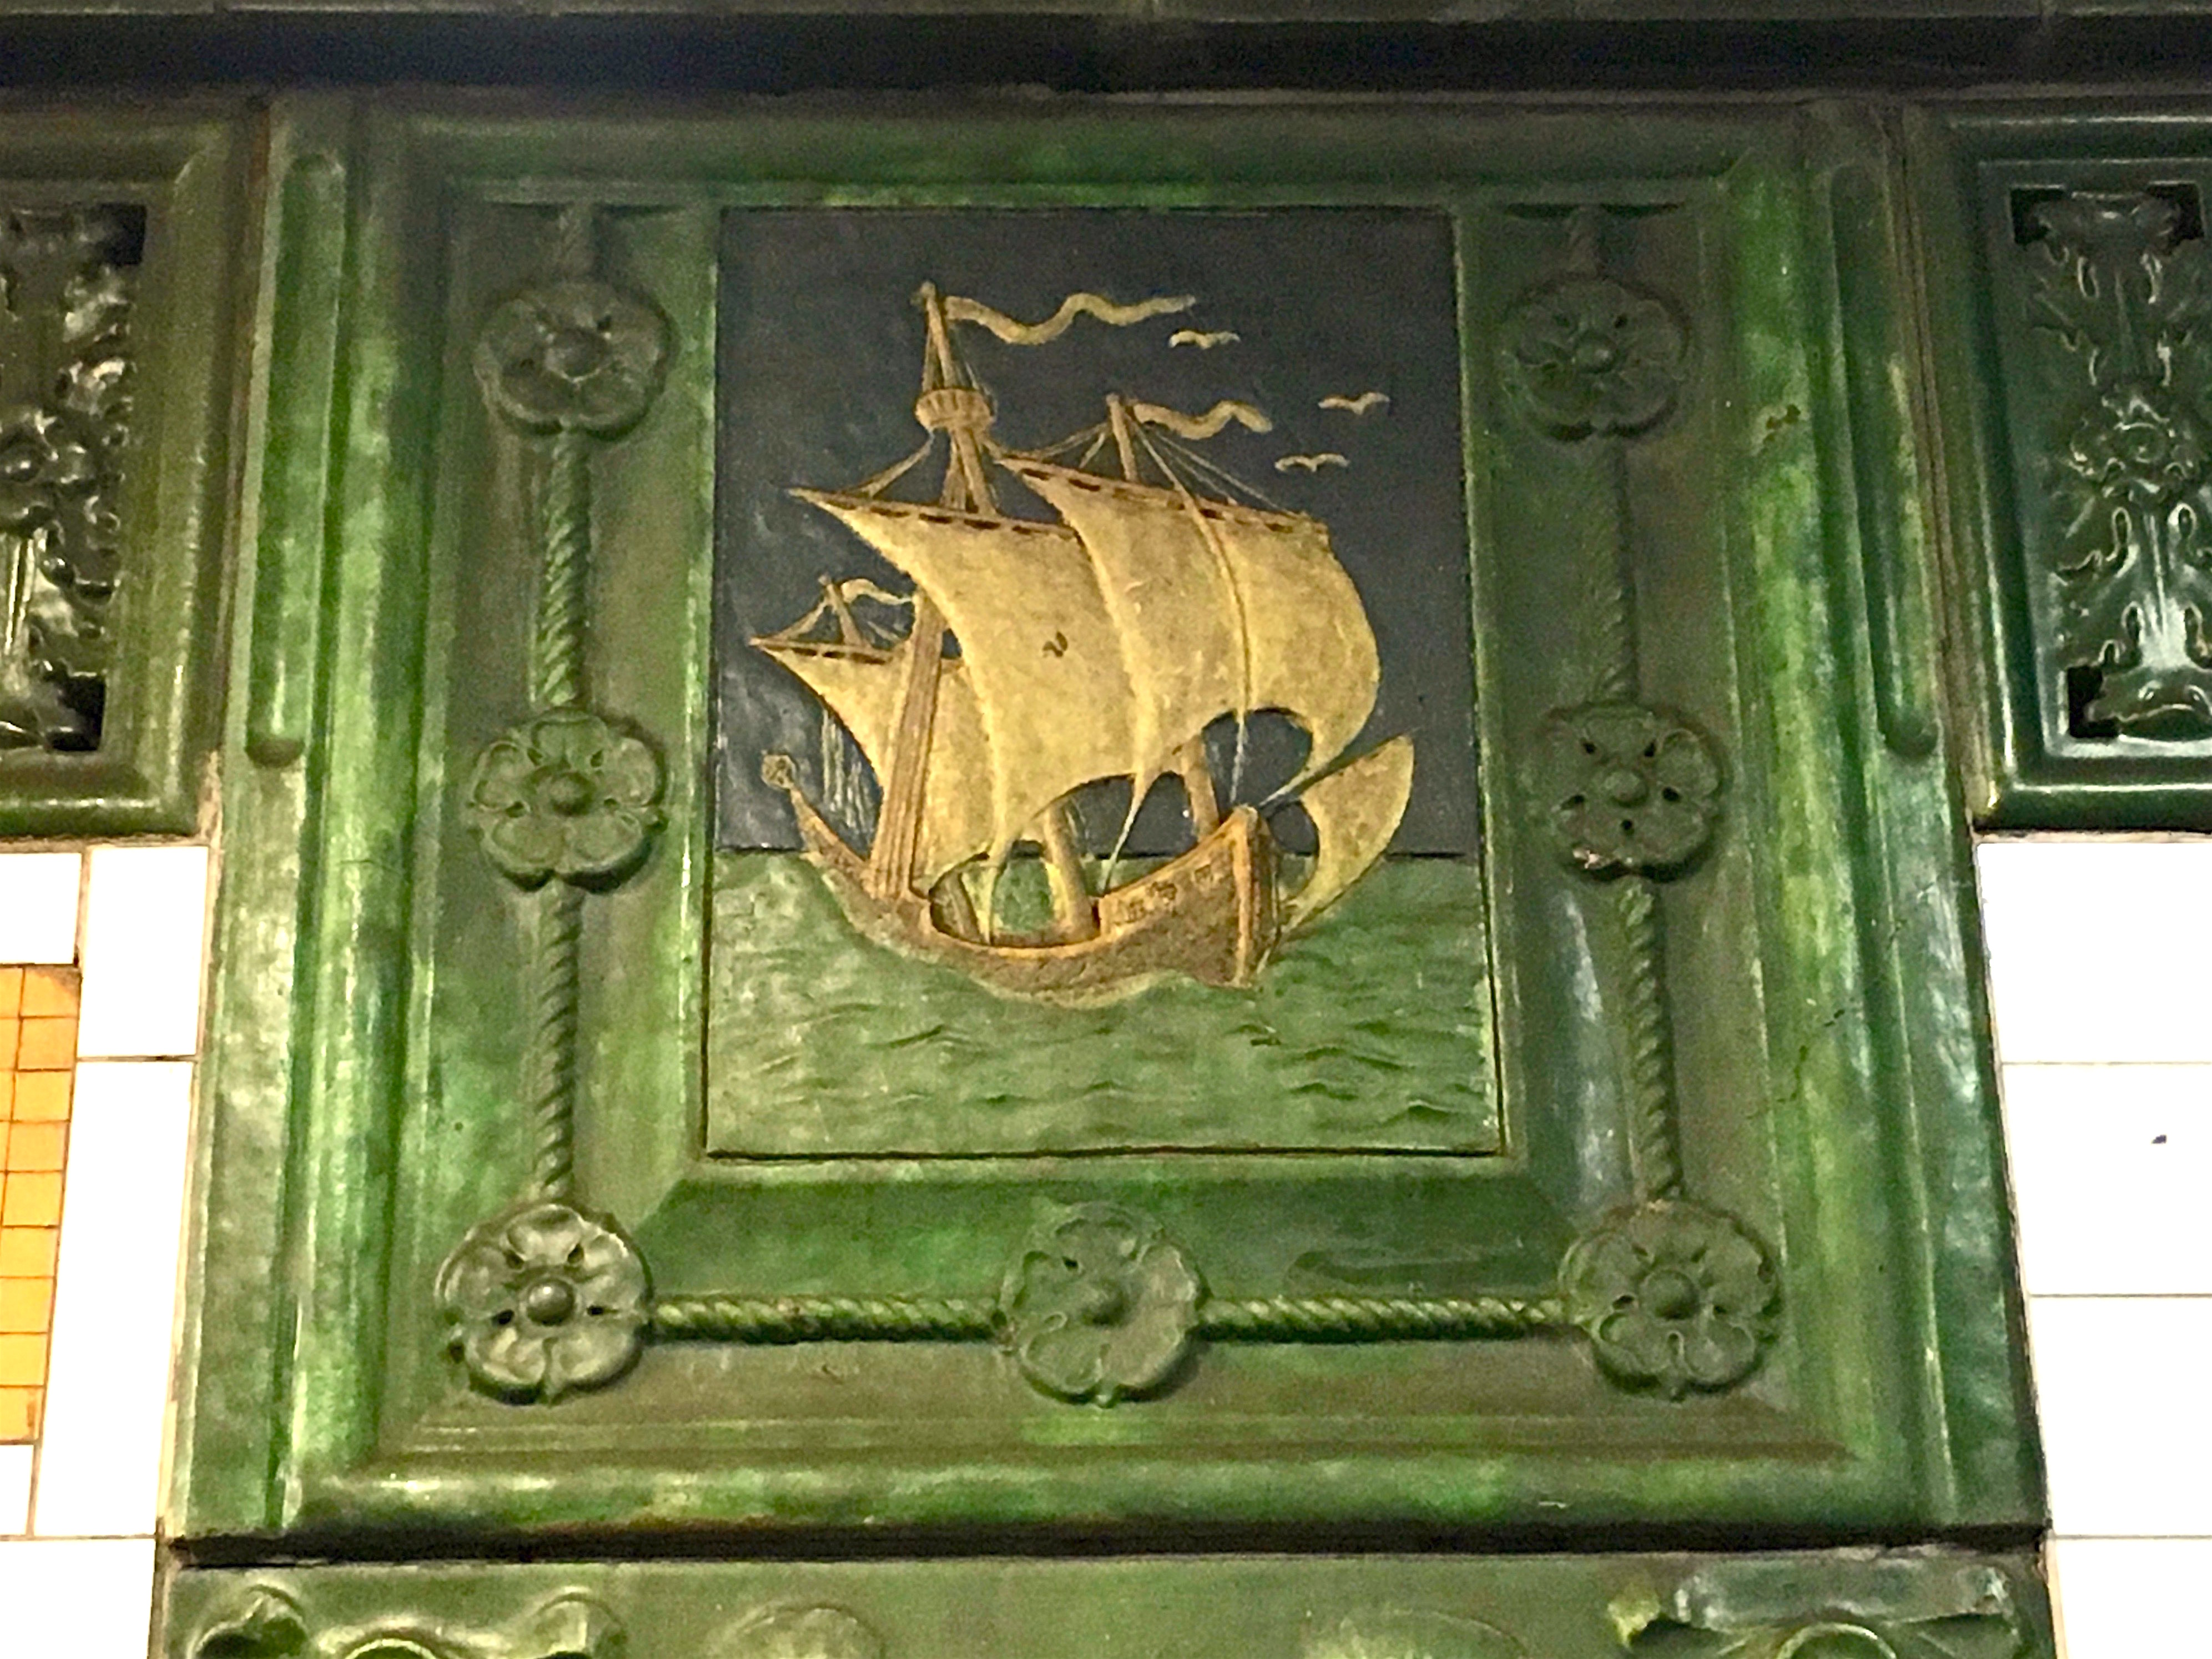 Behold The Blue Green And Off White Faience Plaques Depicting Santa Maria Largest Of Three Sailing Ships Columbus Commanded On His First